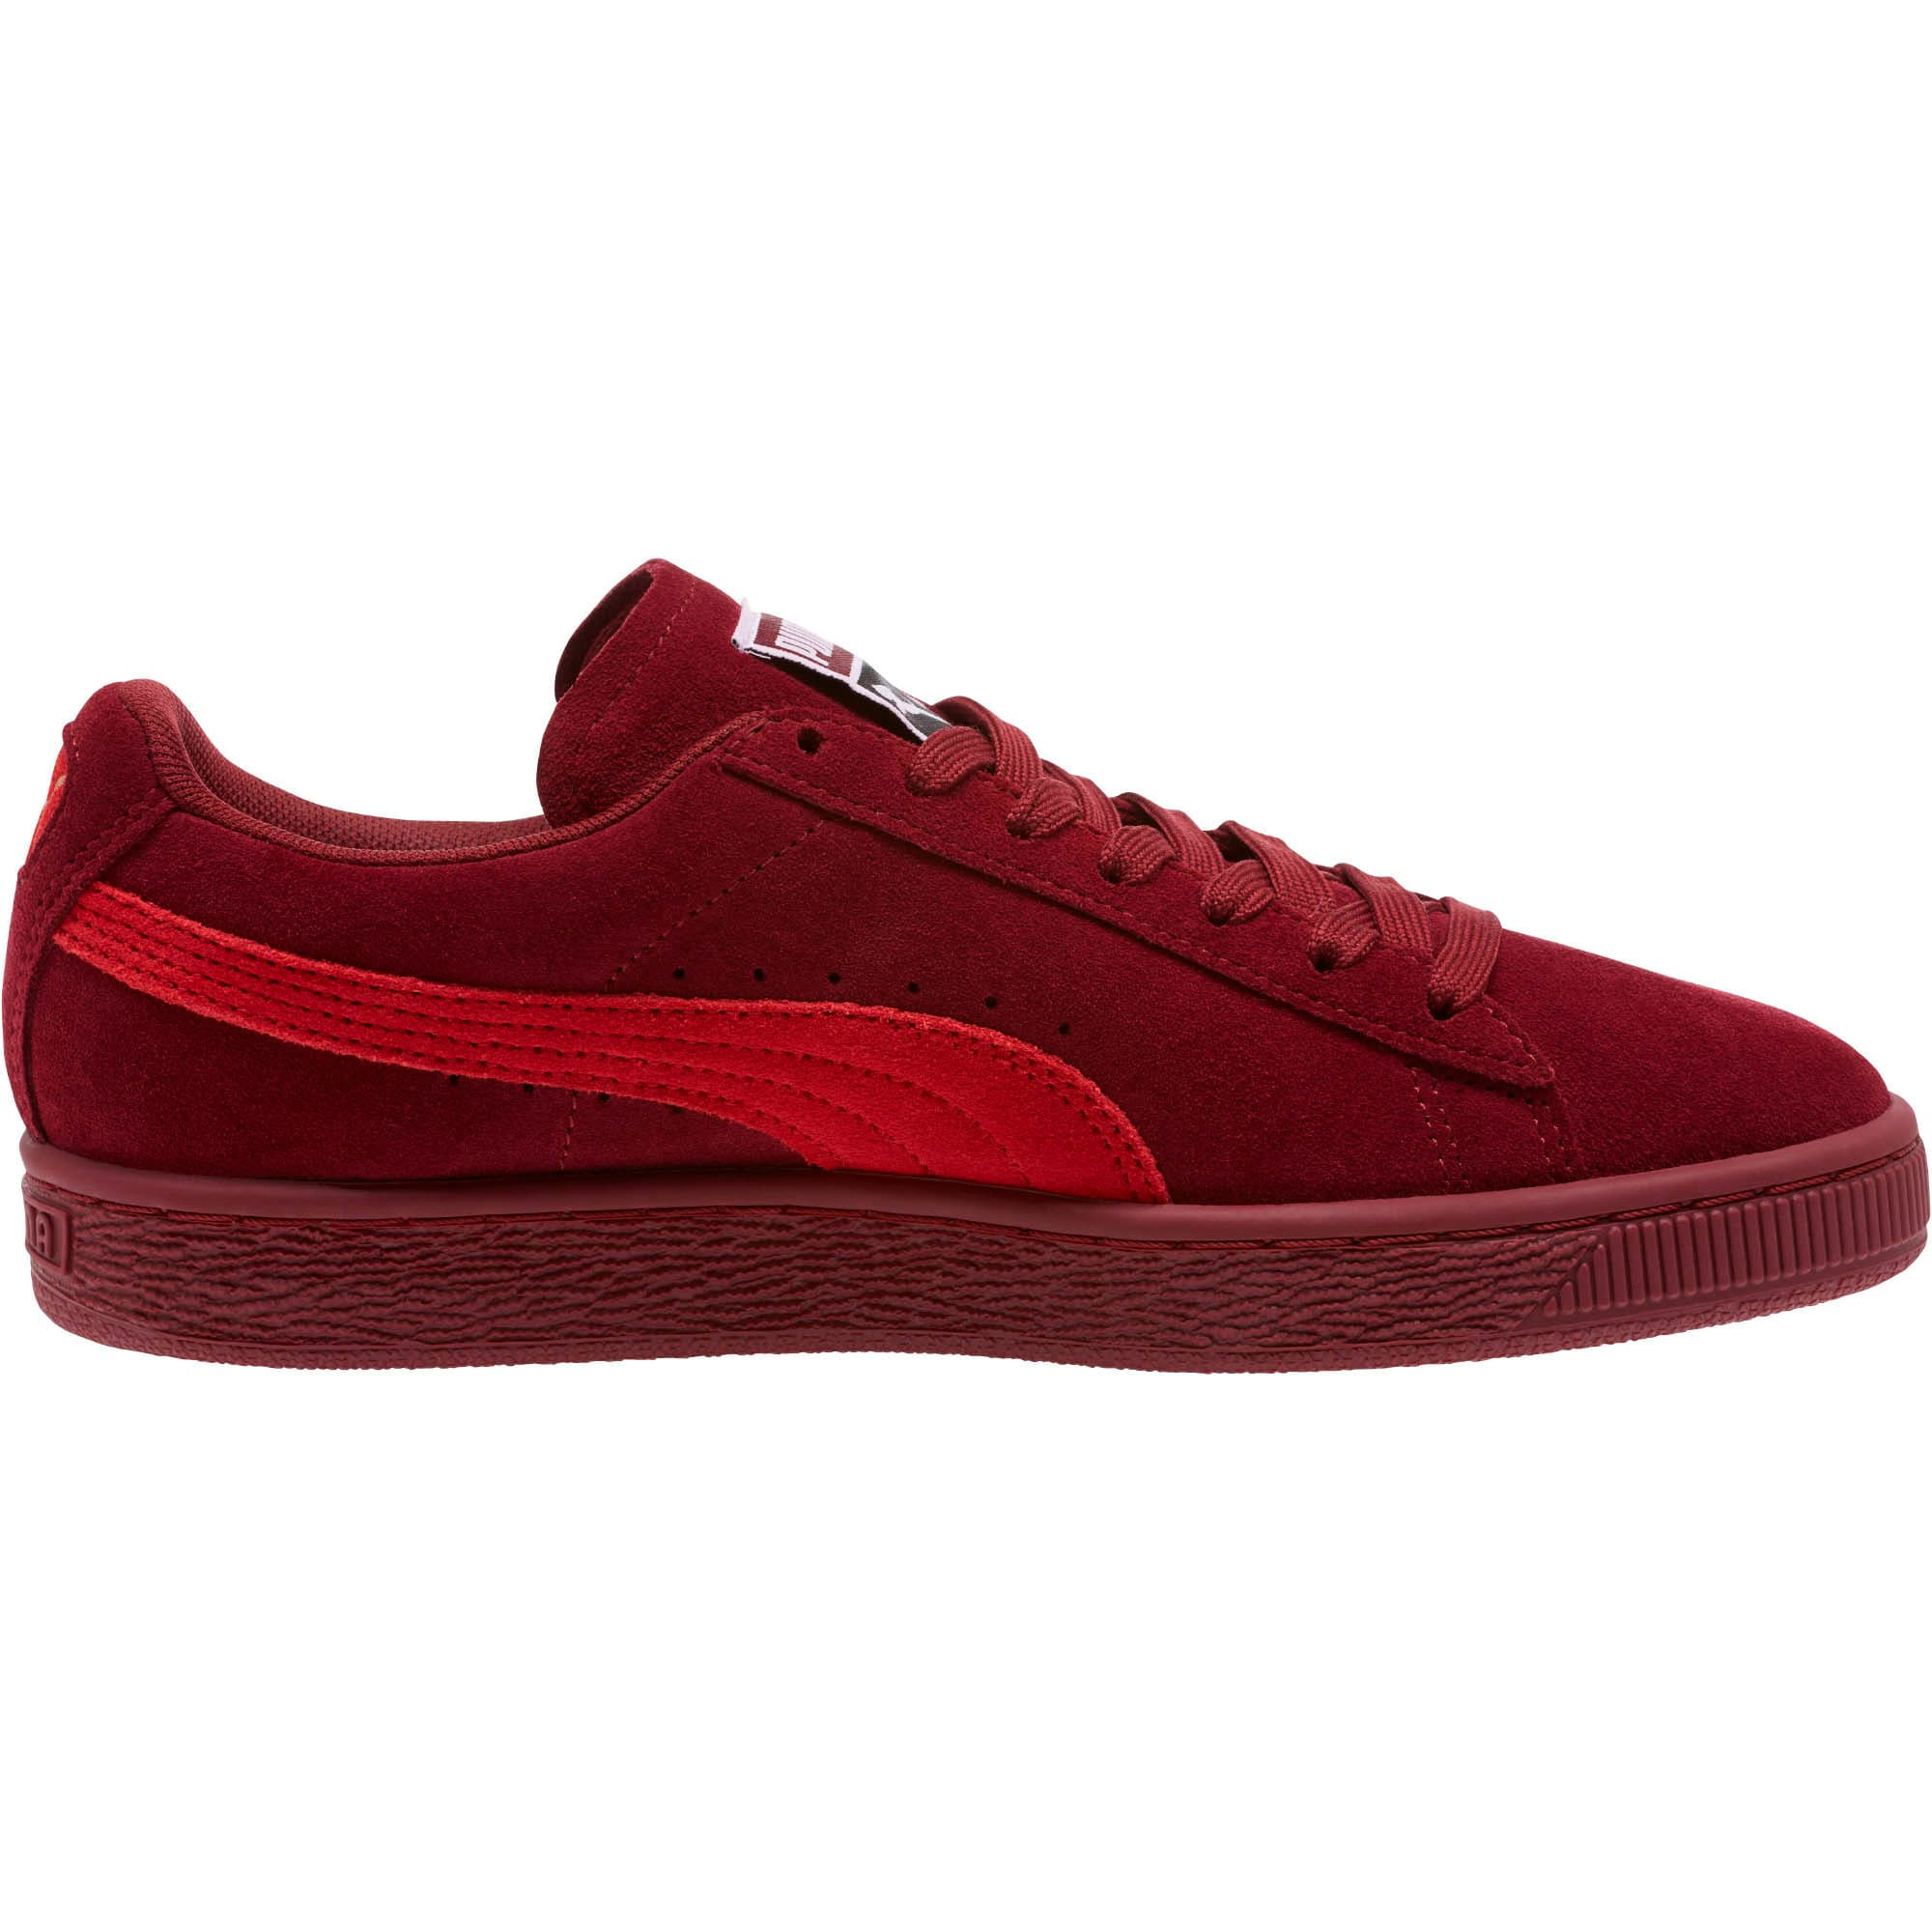 Thumbnail 3 of Suede Classic Women's Sneakers, Pomegranate-Ribbon Red, medium